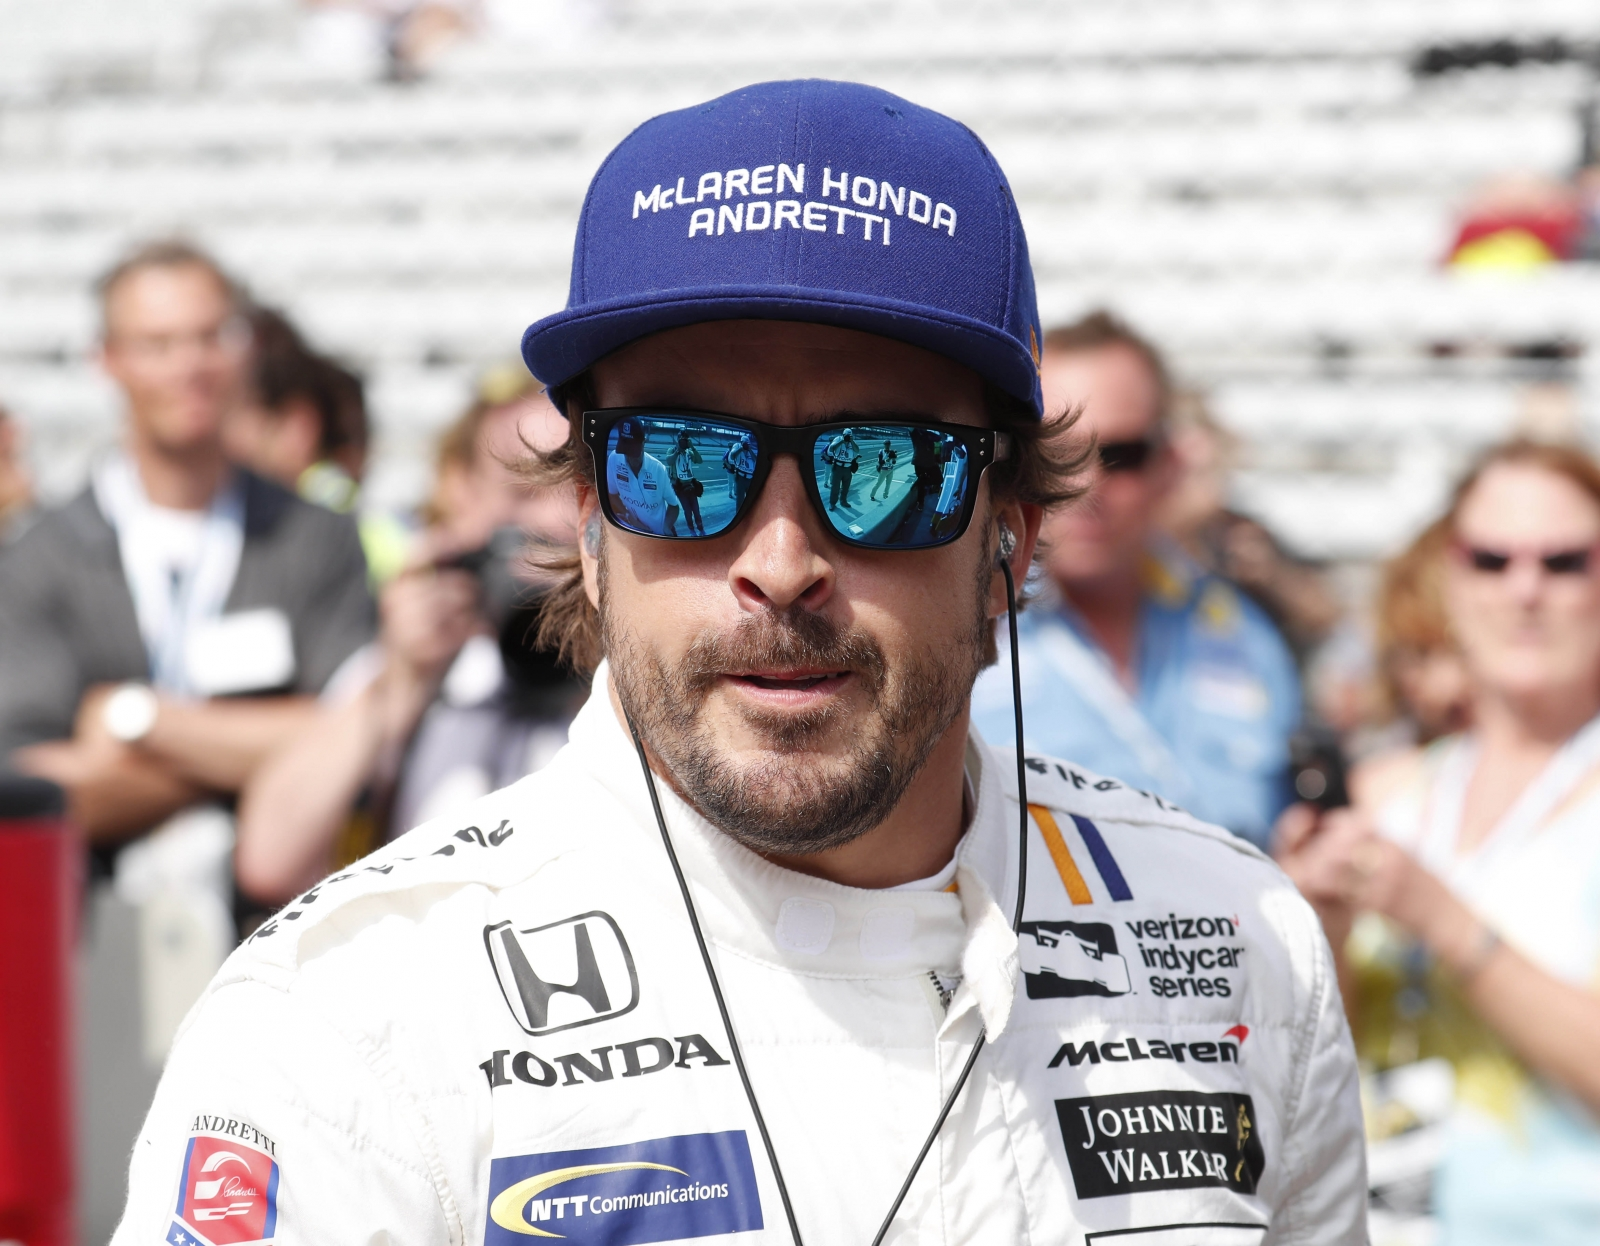 Fernando Alonso at Indy 500: Honda engine problems still haunting Spaniard